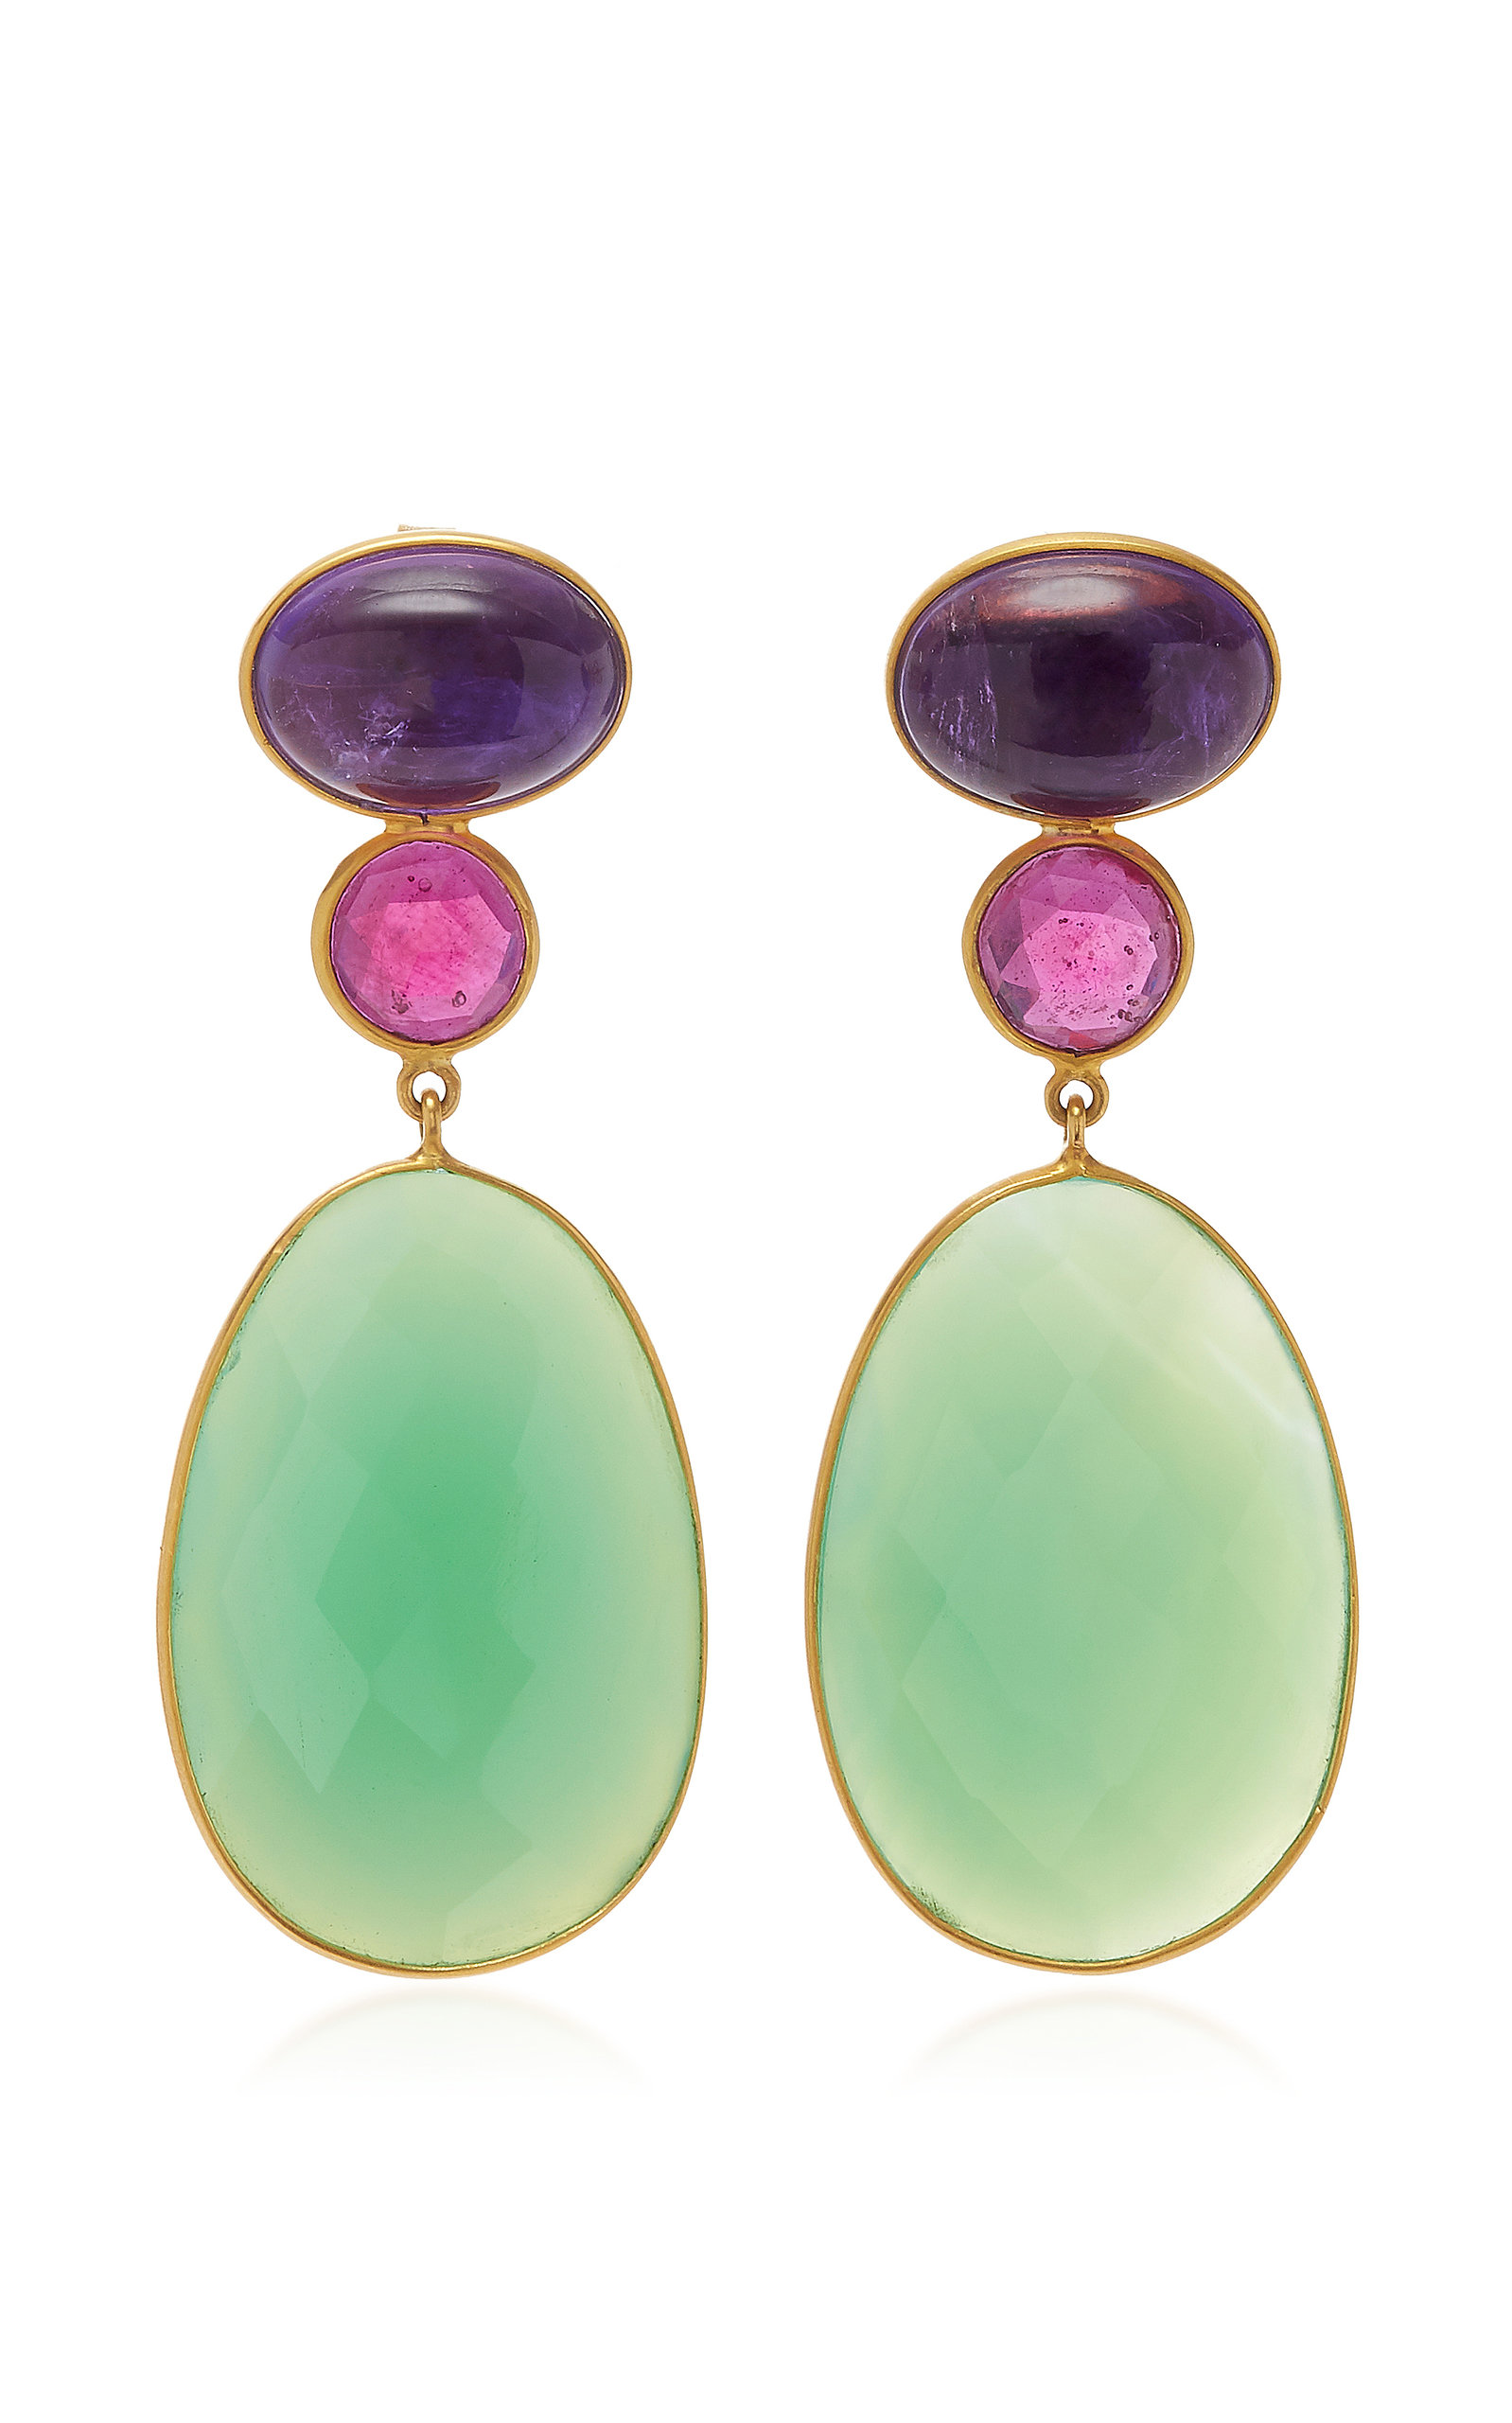 BAHINA 18K Gold Amethyst Ruby And Agathe Earrings in Green